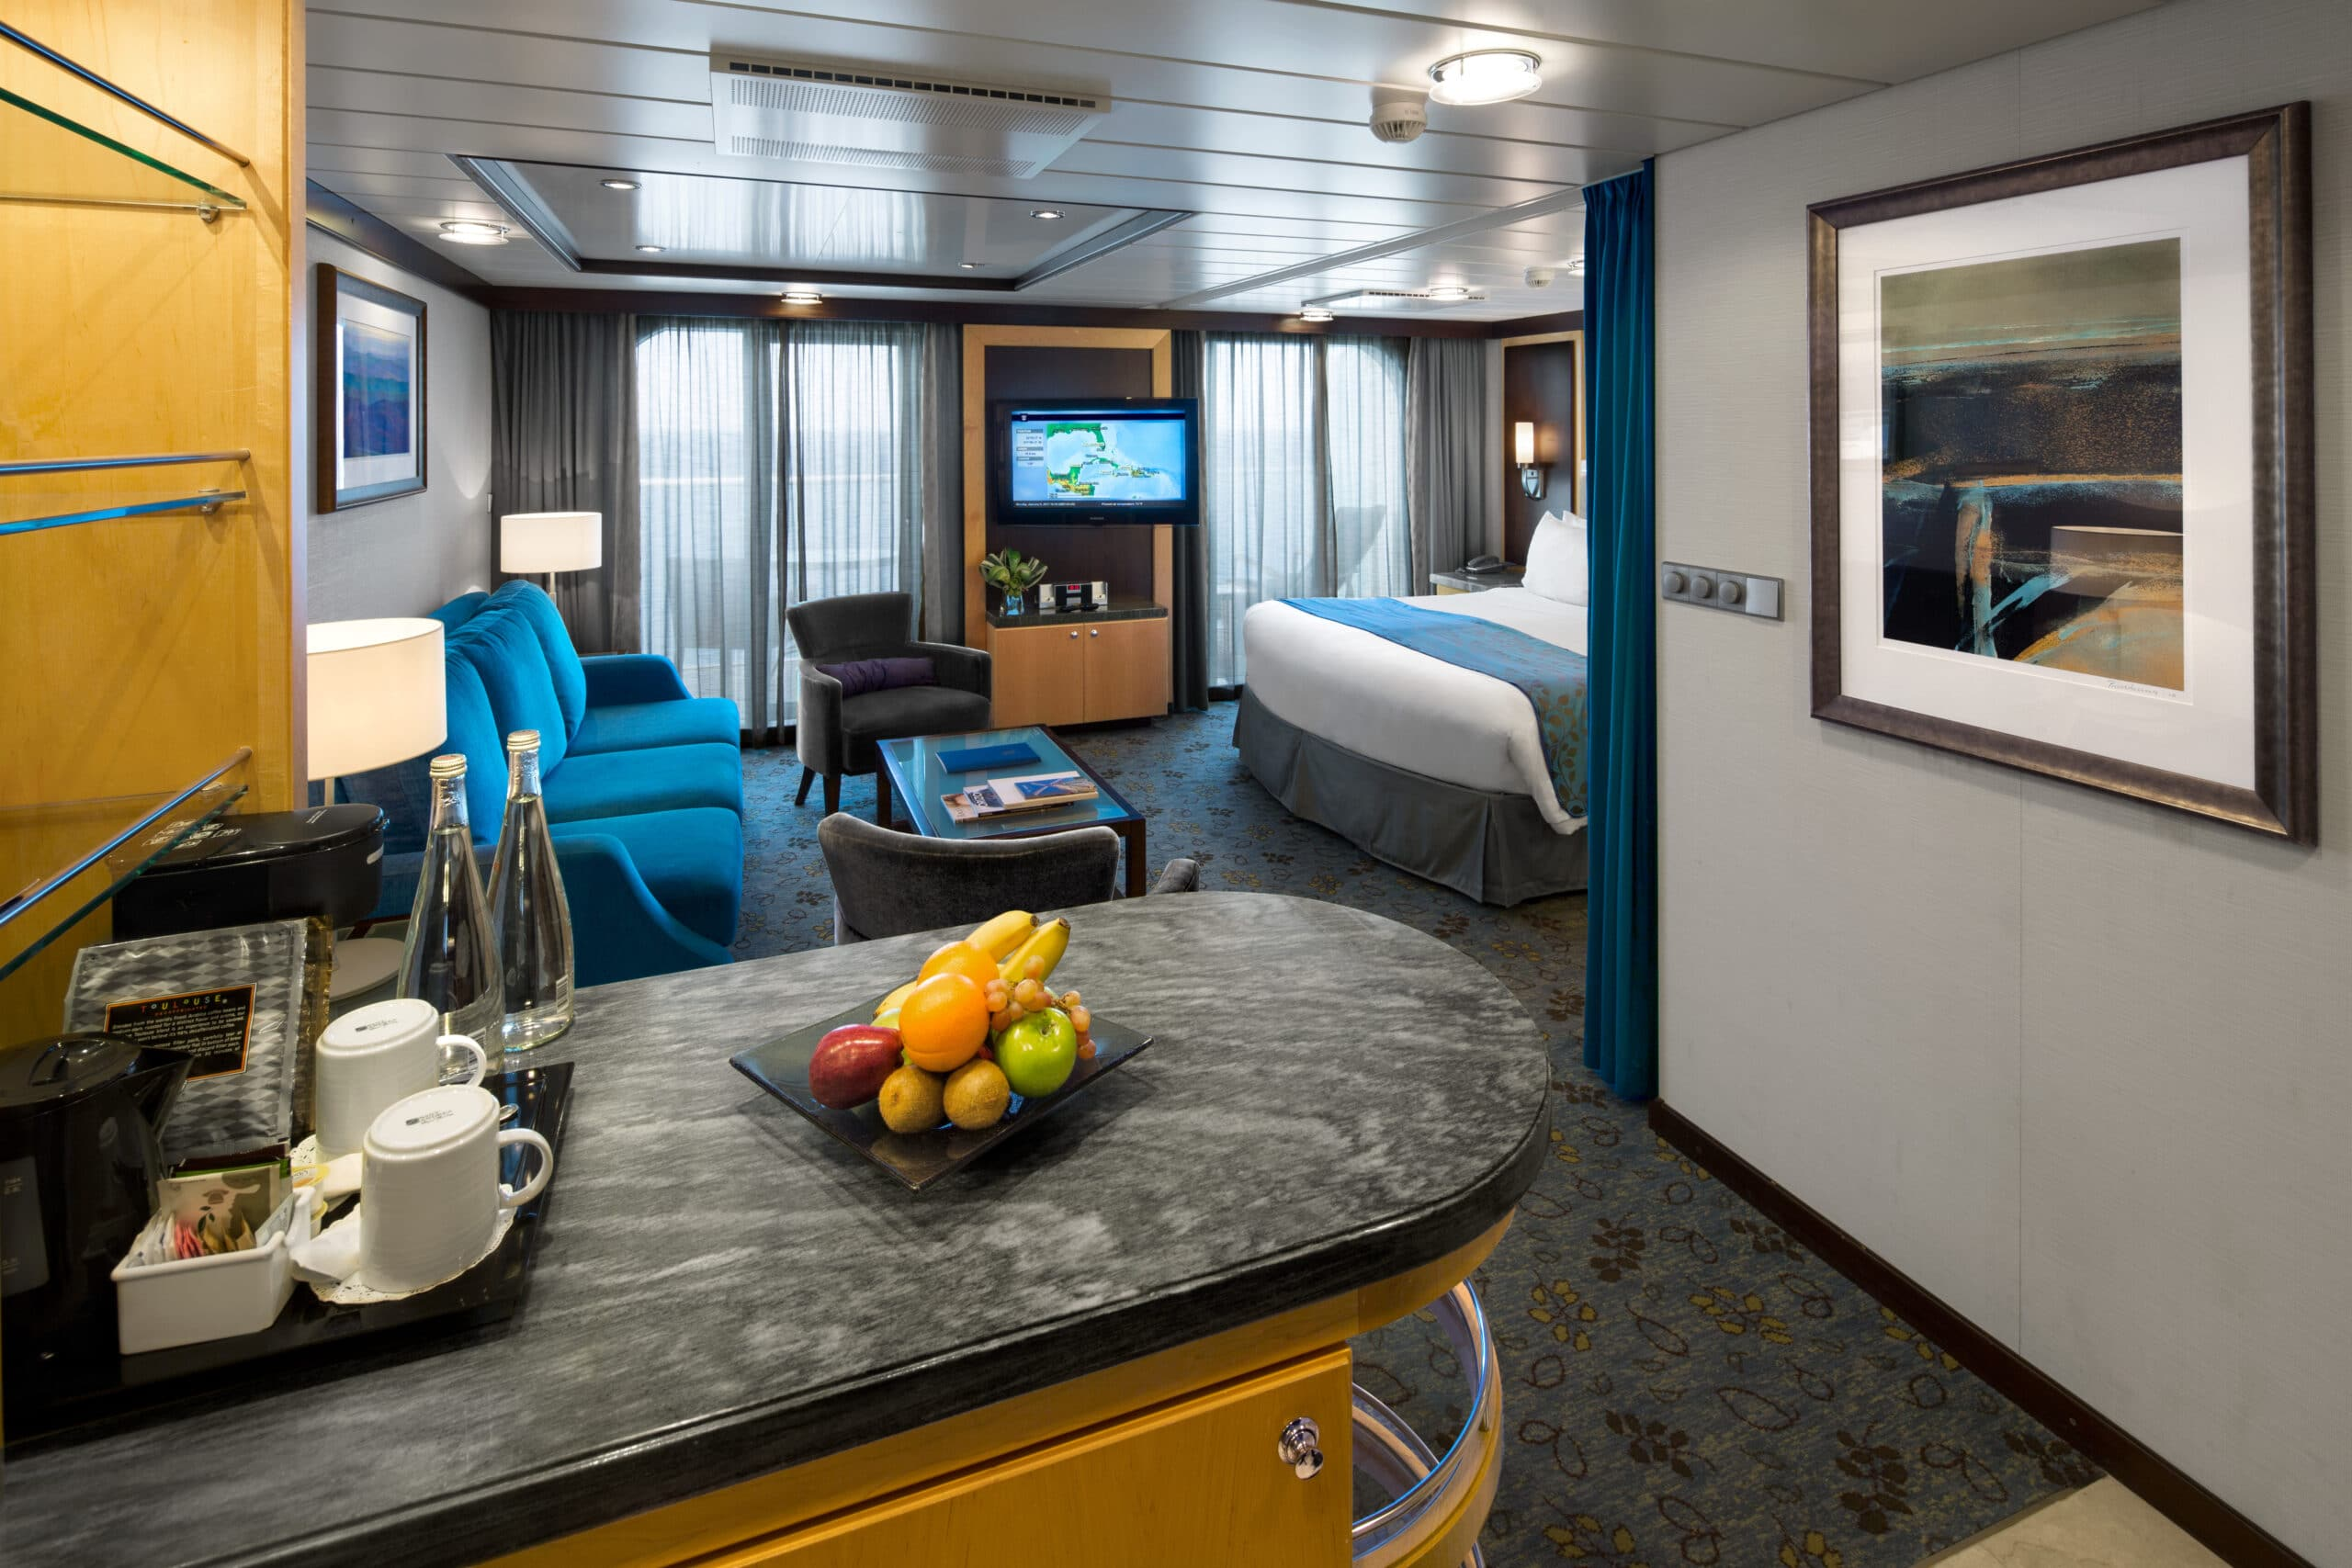 Royal-Caribbean-International-Allure-of-the-Seas-Oasis-of-the-seas-schip-cruiseschip-categorie-GS-Grand-Suite